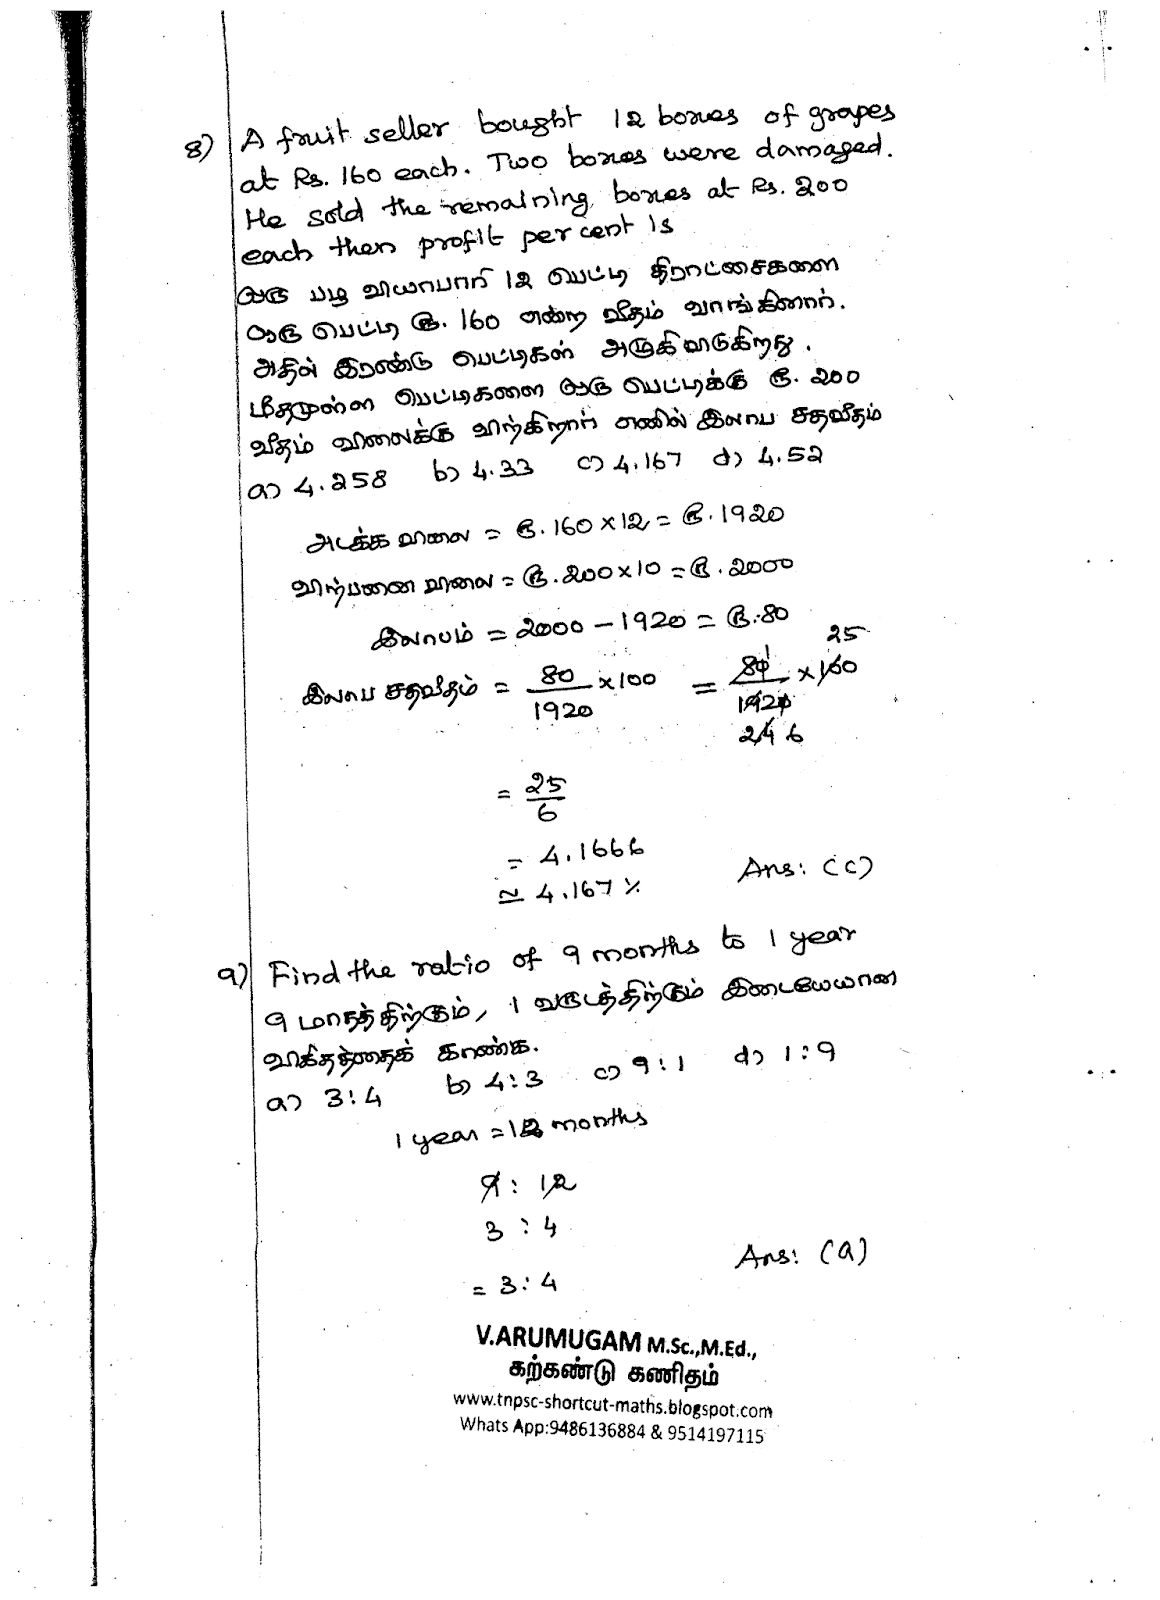 TNPSC – 2019 - Project Officer in Tamil Nadu General Service and Psychologist in Tamil Nadu Jail Service EXAM - EXAM DATE: 21.12.2019. PAGE - 05/15